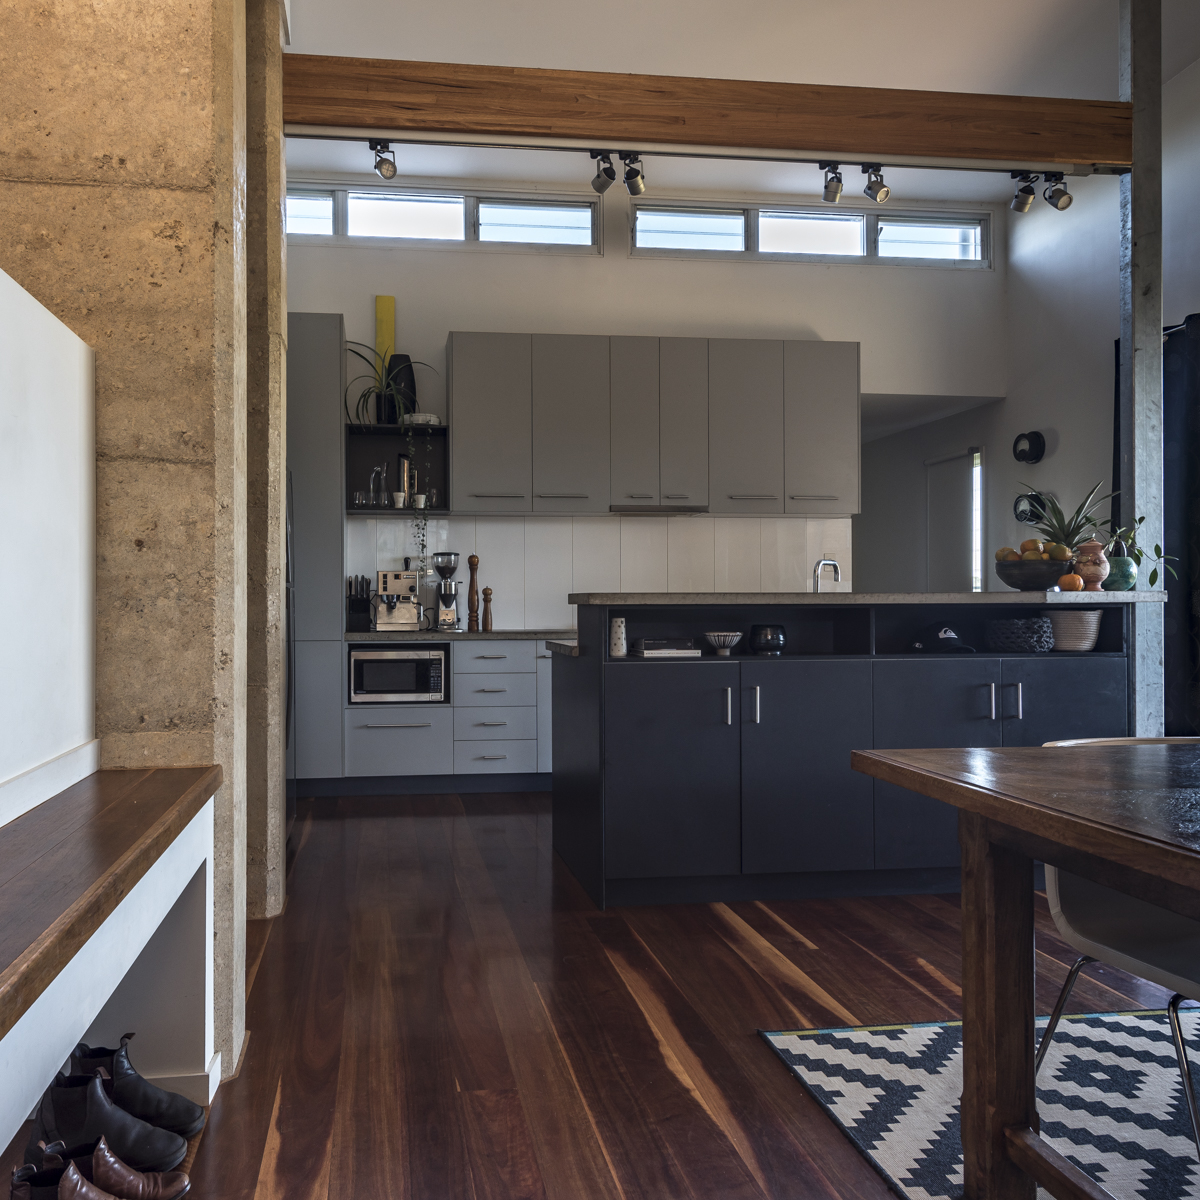 View to kitchen with island bench and timber floors